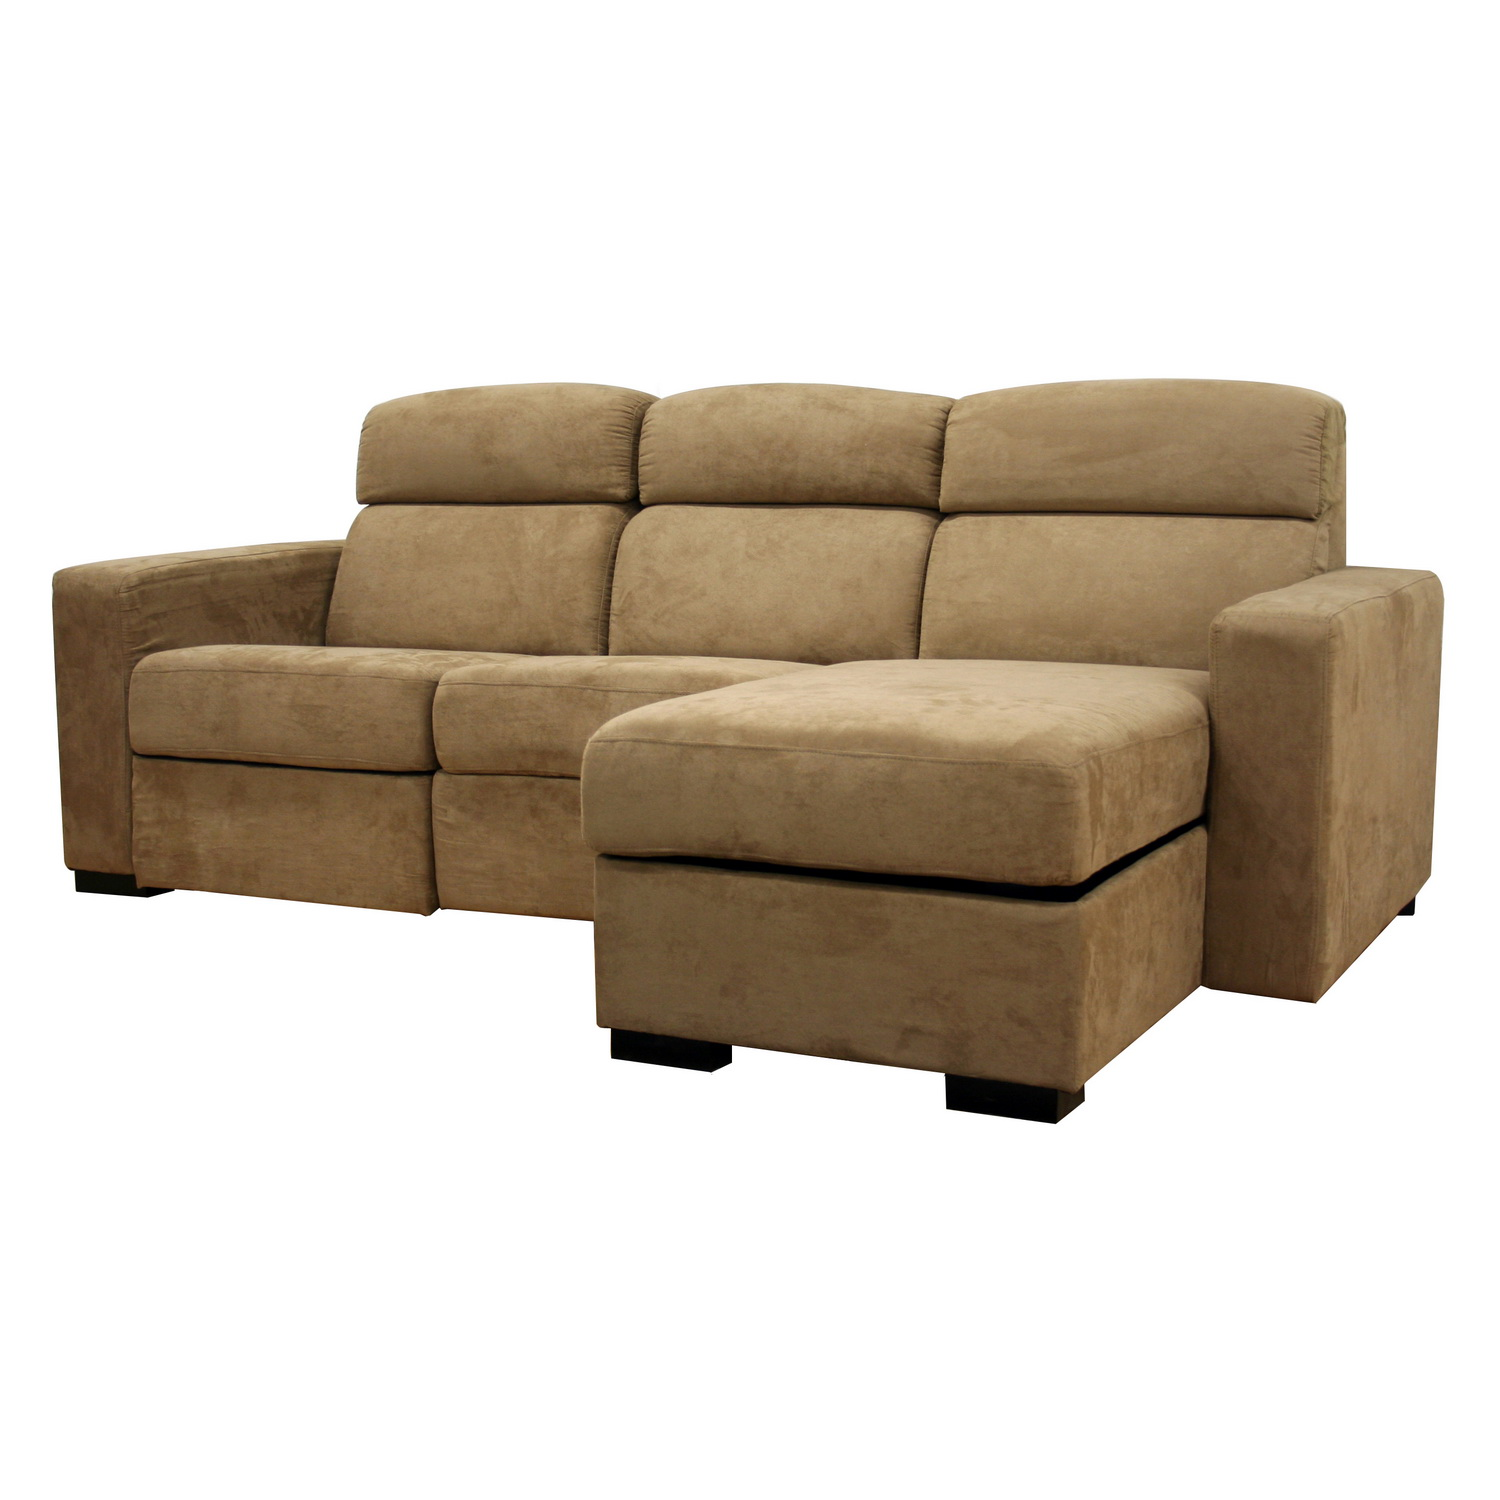 Sectional Sofas: Incognito Sectional Sofa Bed with Storage Chaise